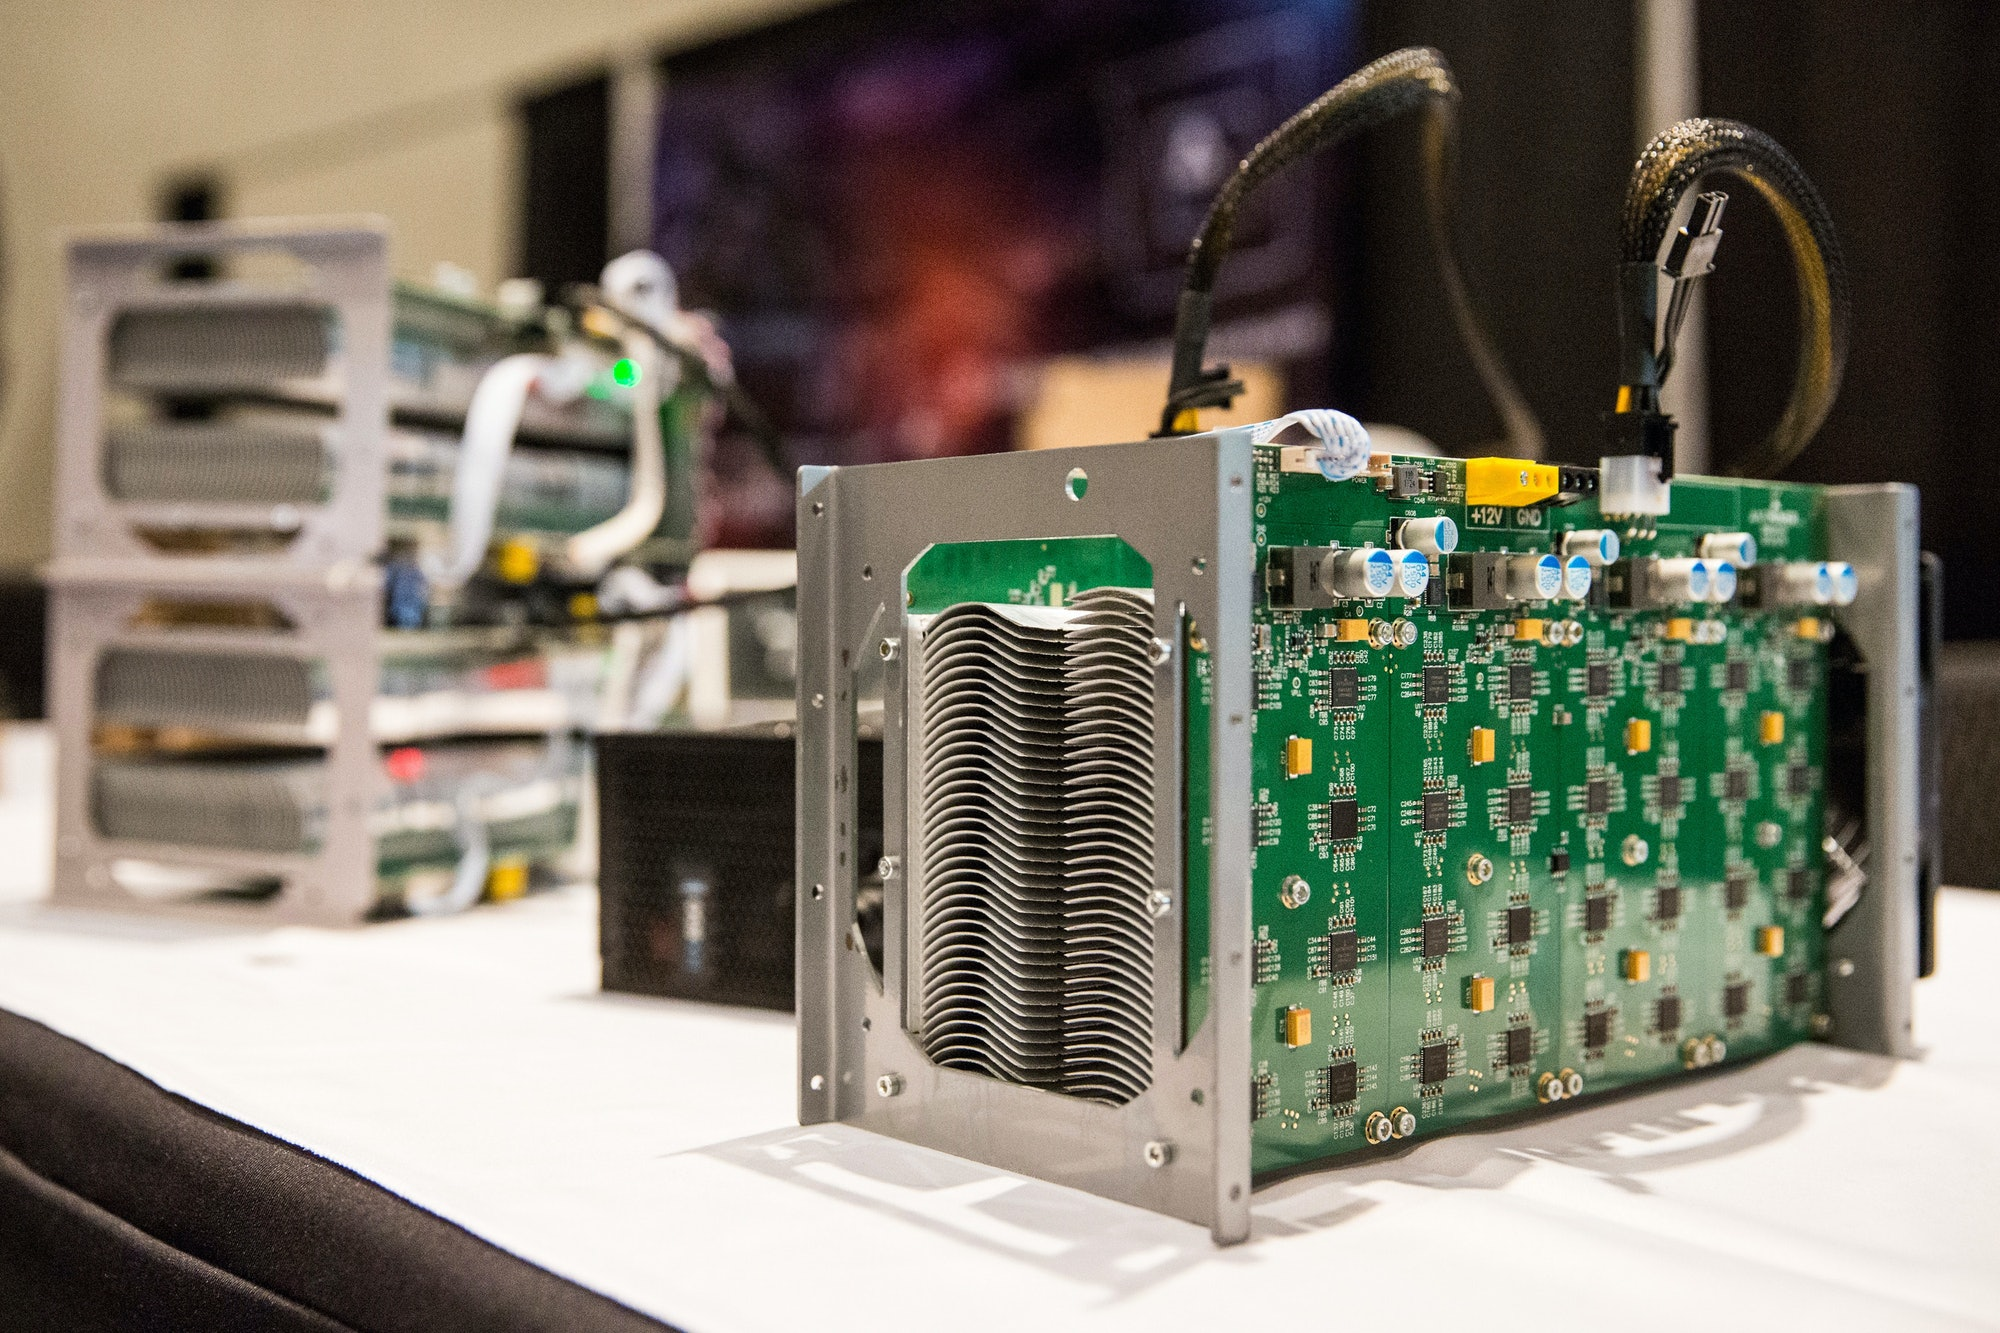 NEW YORK, NY - APRIL 07: Bitcoin mining hardware is displayed at a Bitcoin conference on at the Javits Center April 7,2014in New York City. Topics included market places to trade bitcoin, mining hardware to harvest bitcoins and digital wallets to store bitcoins. Bitcoin is one of the most popular of over one hundred digital currencies that have recently come into popularity. (Photo by Andrew Burton/Getty Images)